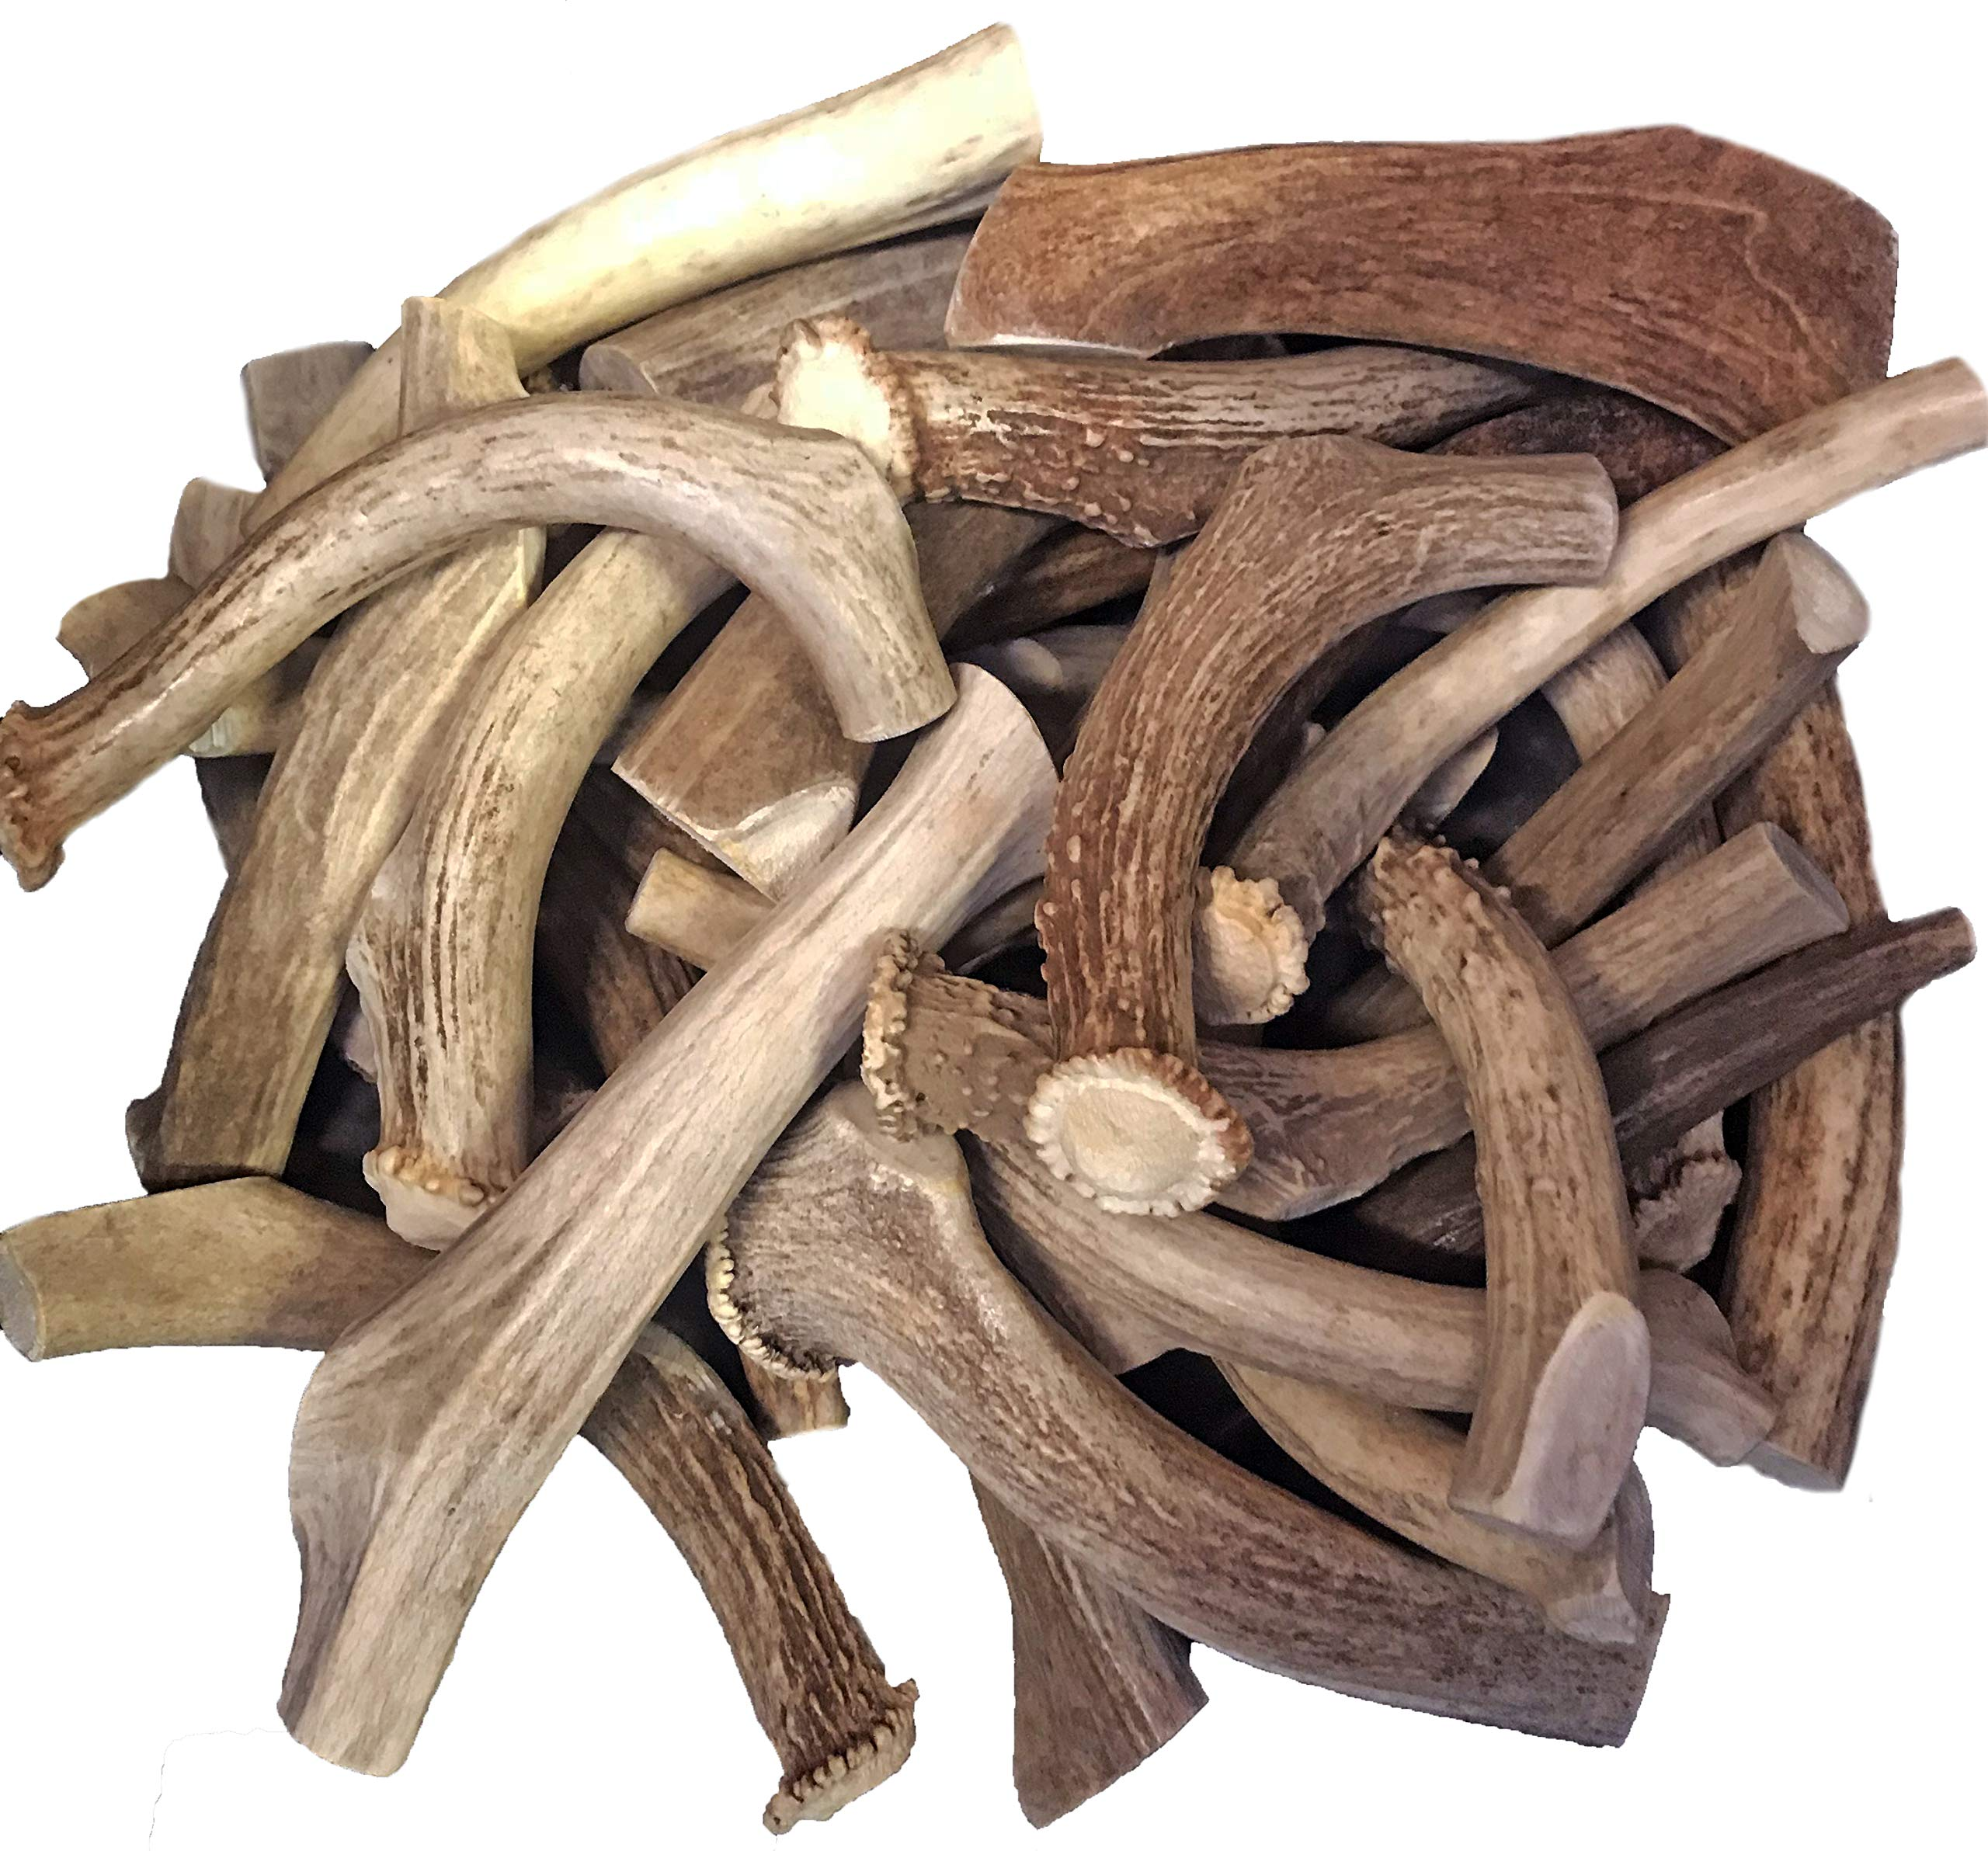 WhiteTail Naturals Premium Deer Antlers for Dogs (1 lb. Pack) All Natural Antler Chews | A Grade Organic Horn Dog Bone for Medium and Big Breeds | Power Chewer